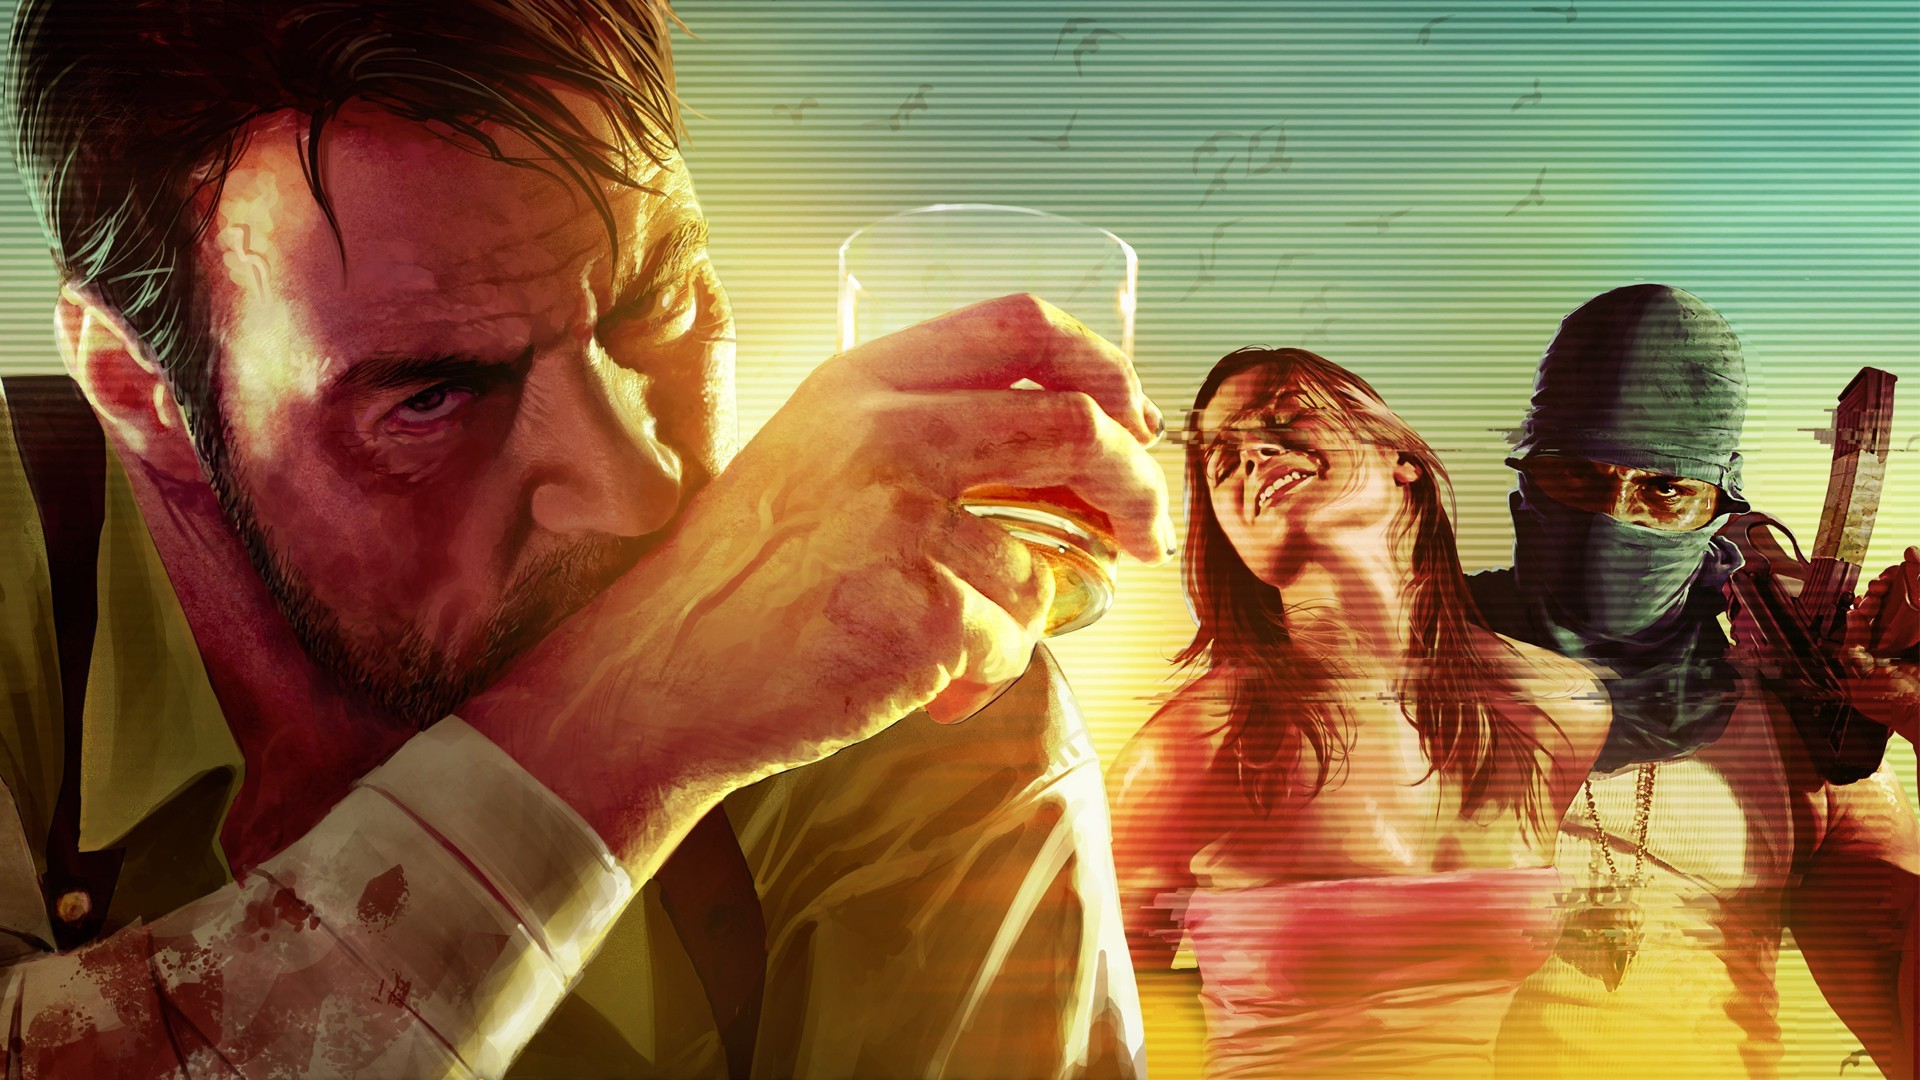 1920x1080 Max Payne, Video Games, Max Payne 3 Wallpapers HD / Desktop and Mobile  Backgrounds